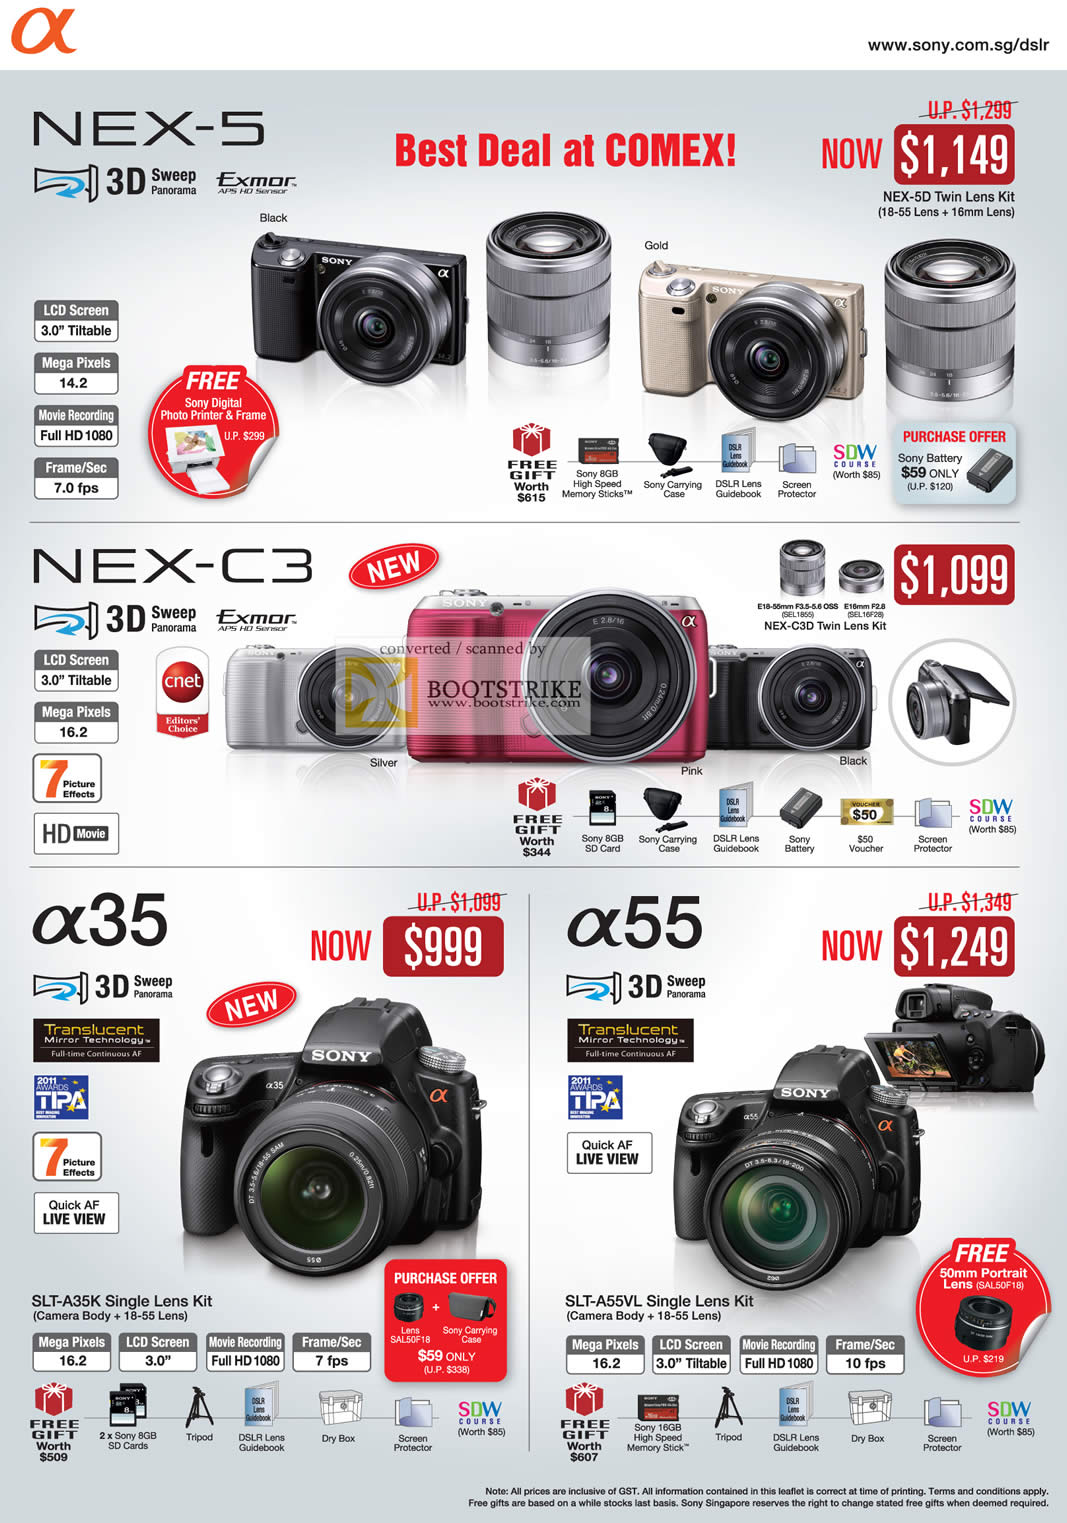 Camera Sony Dslr Camera Price List sony digital cameras dslr alpha nex 5 c3 a35 a55 comex 2011 price list image brochure of nex